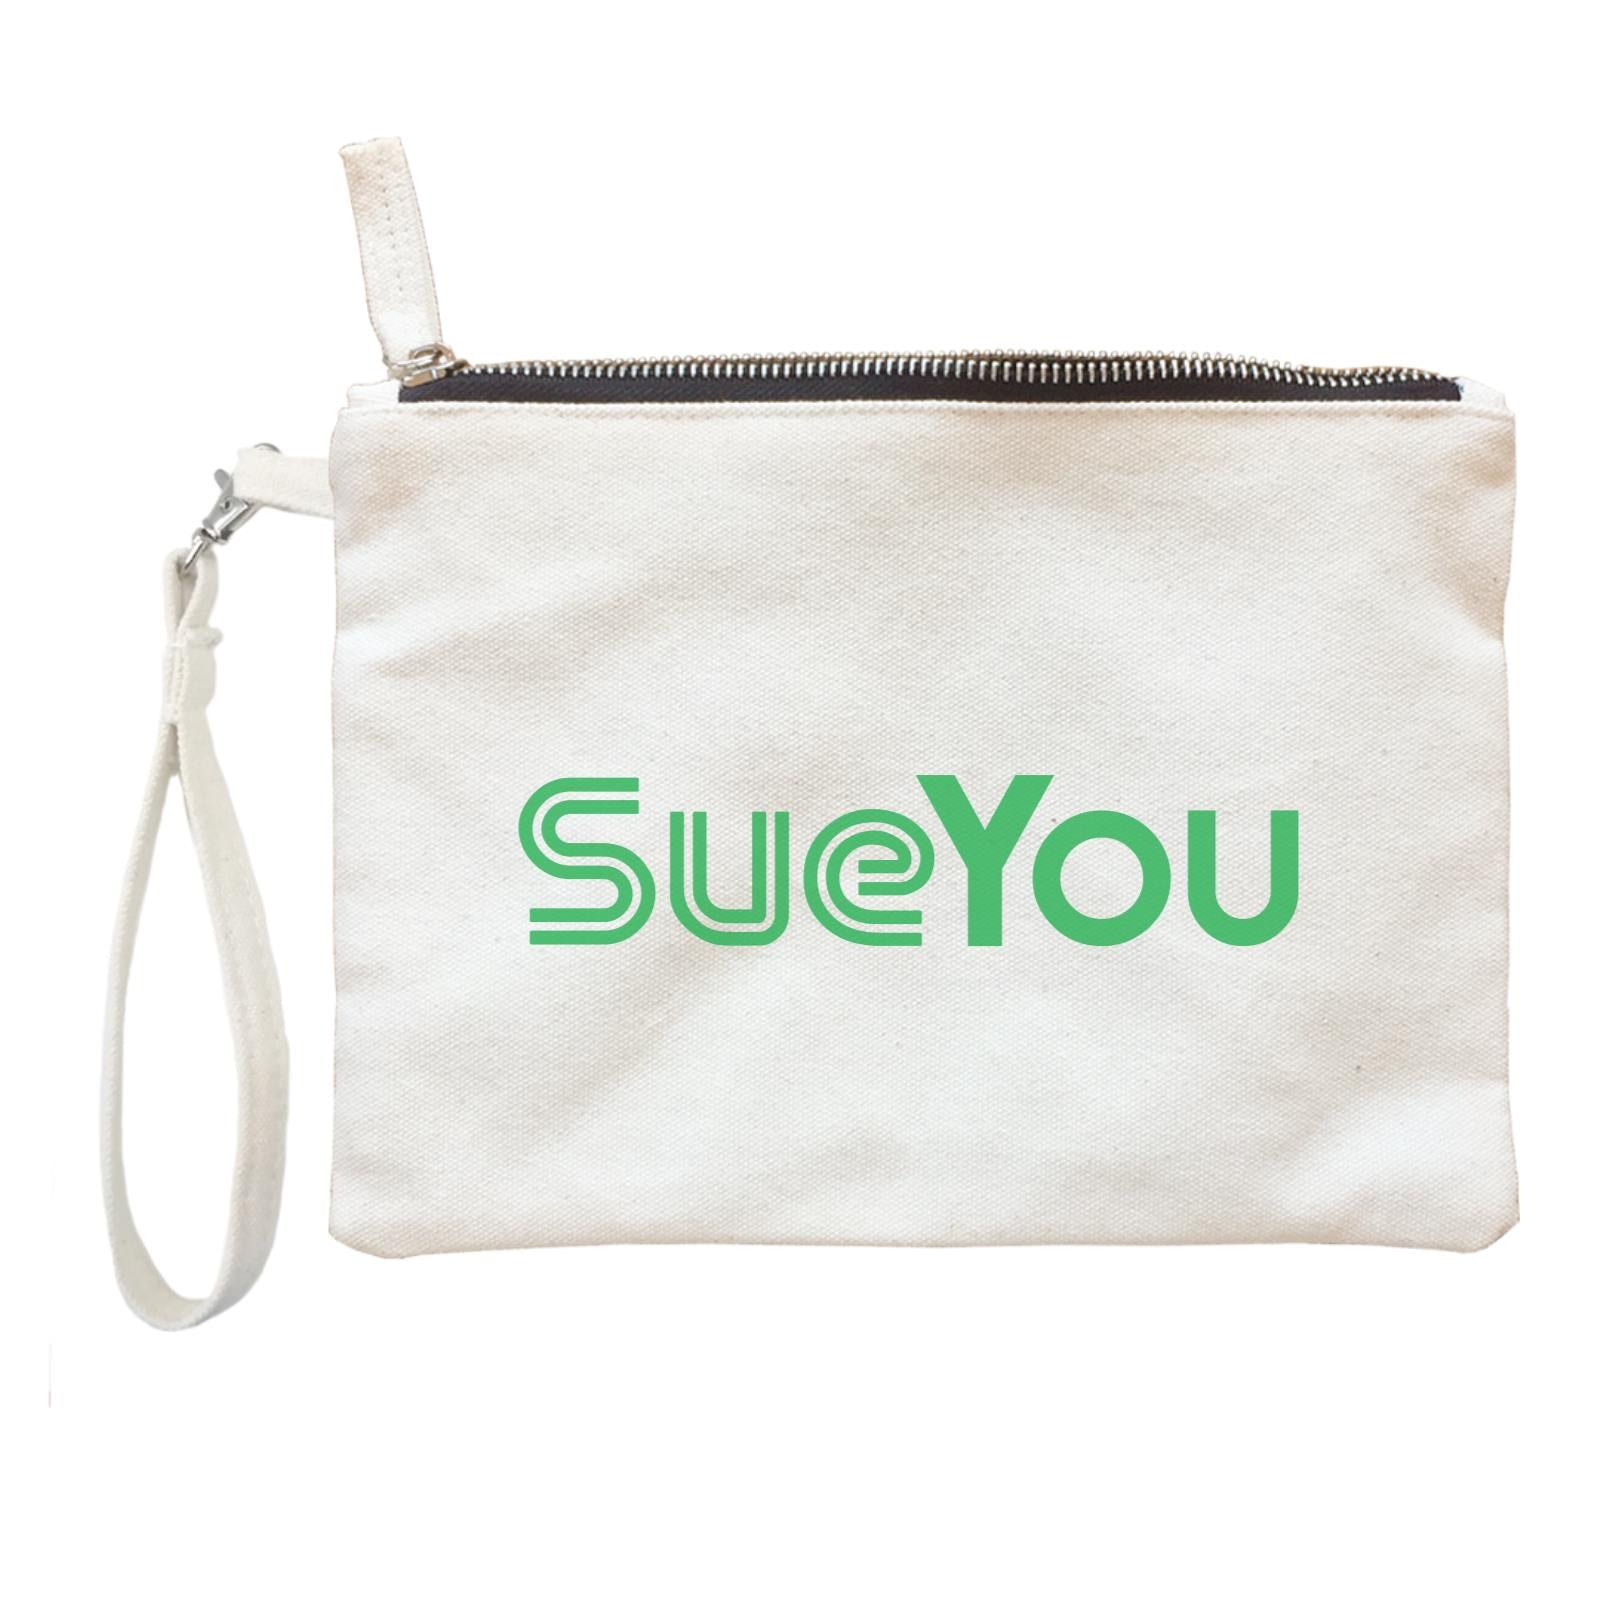 Slang Statement SueYou Accessories Zipper Pouch with Handle